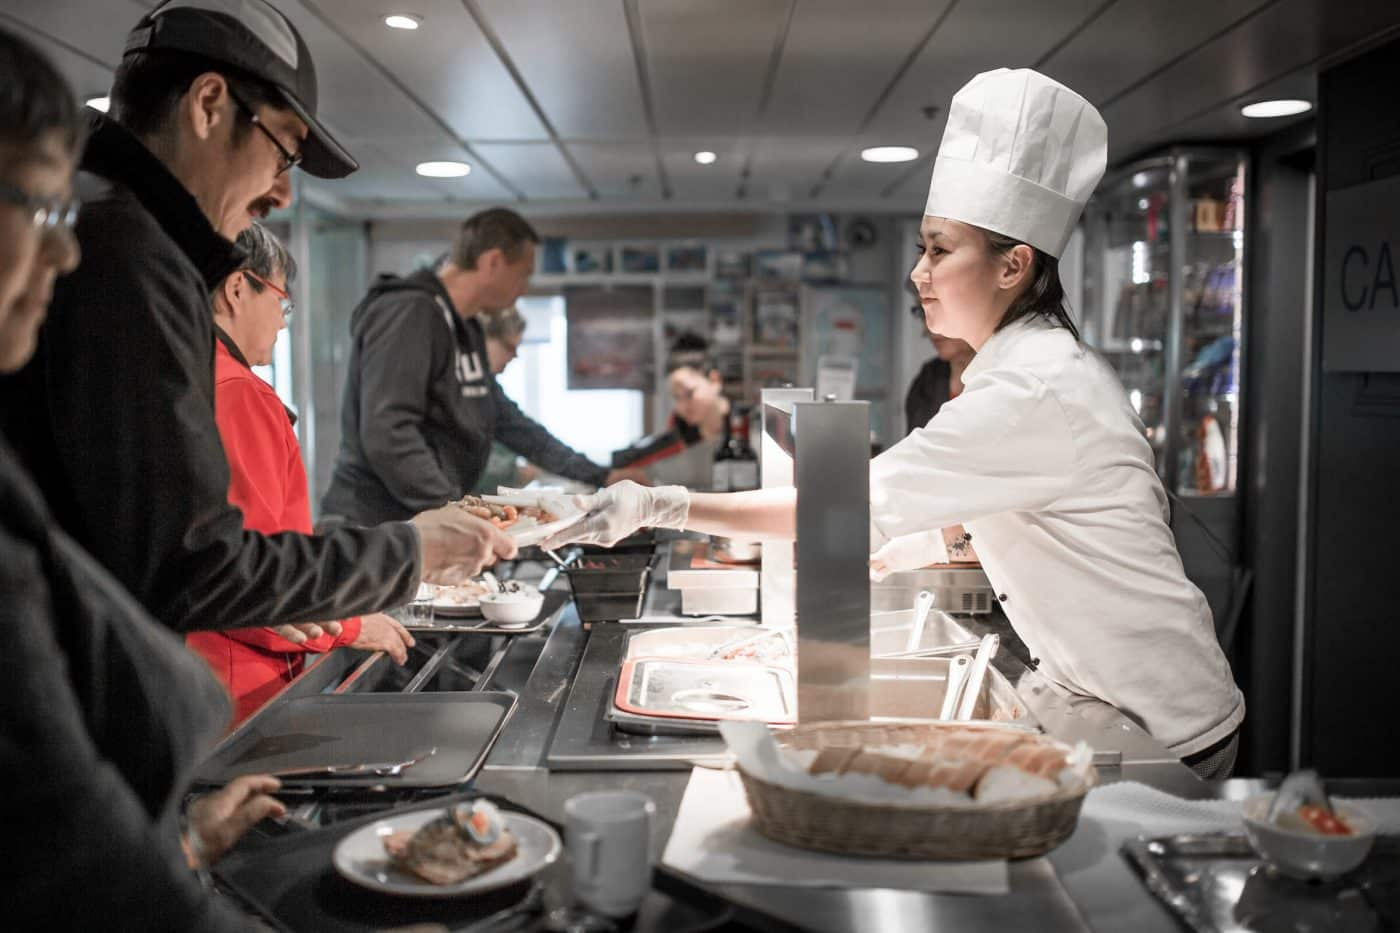 A chef serving dinner on board the passenger ferry Sarfaq Ittuk in Greenland. By Mads Pihl